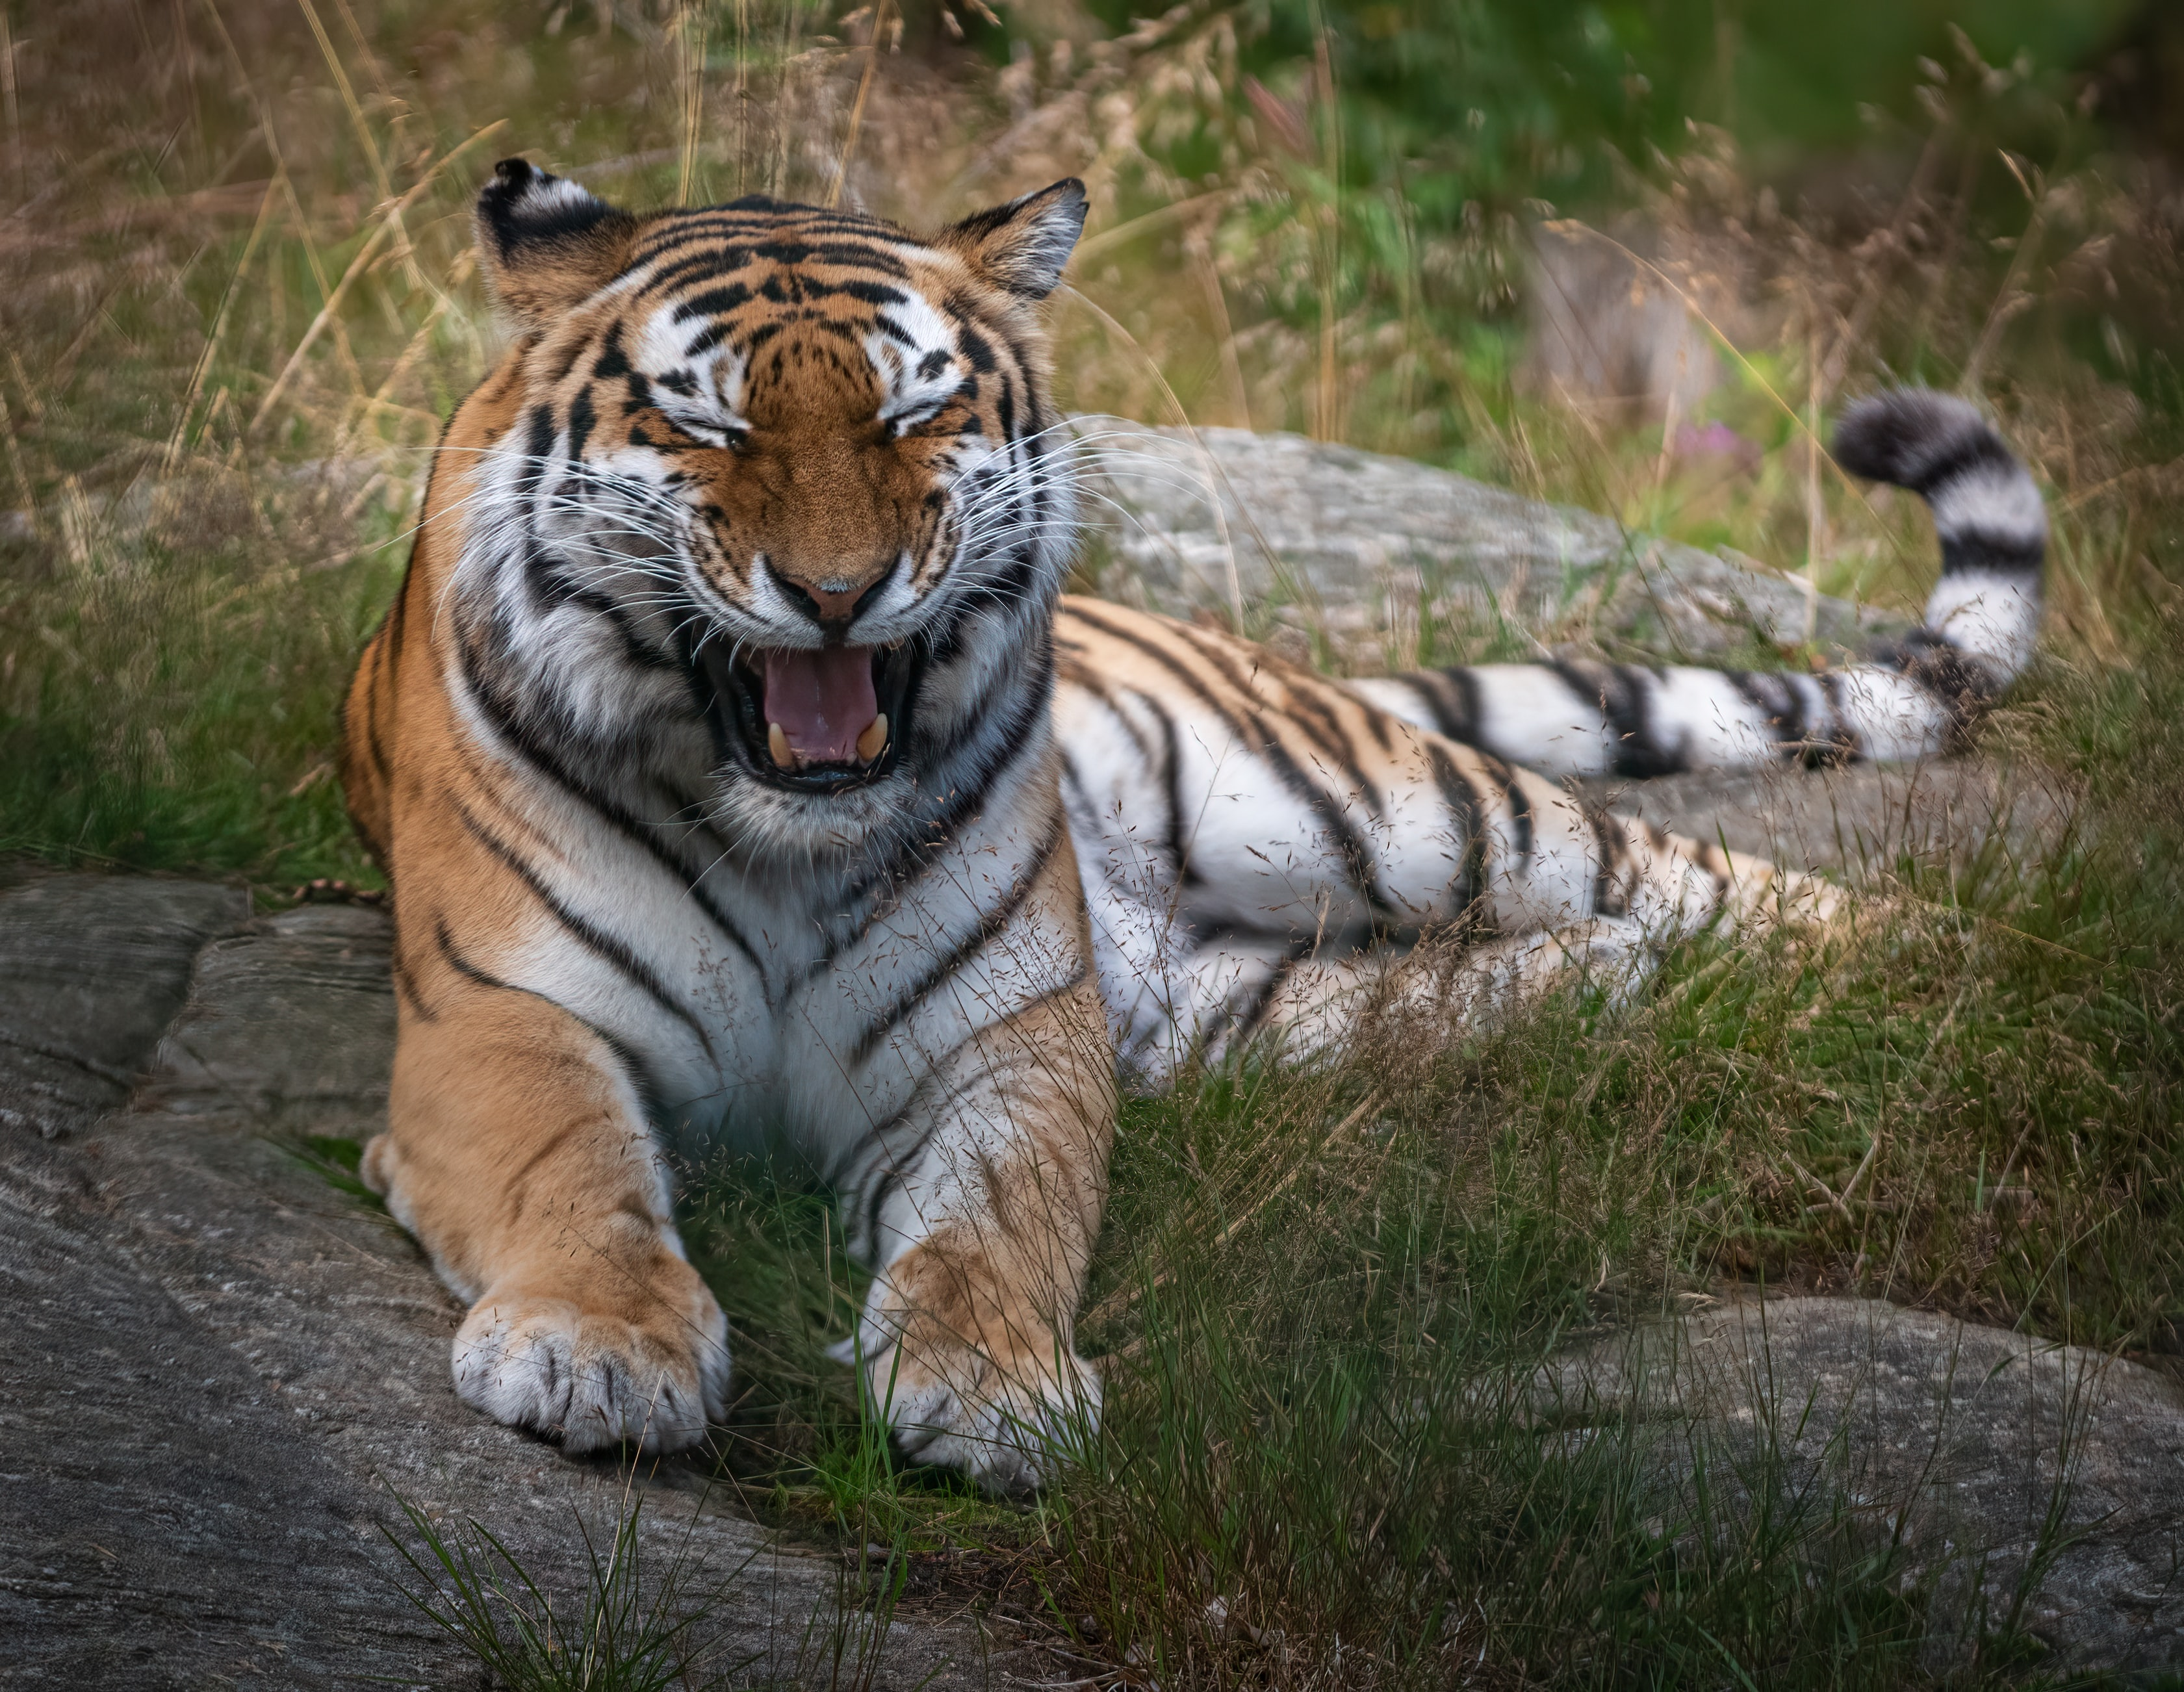 72539 download wallpaper Animals, Tiger, To Fall, Mouth, Fangs, Predator, Animal screensavers and pictures for free